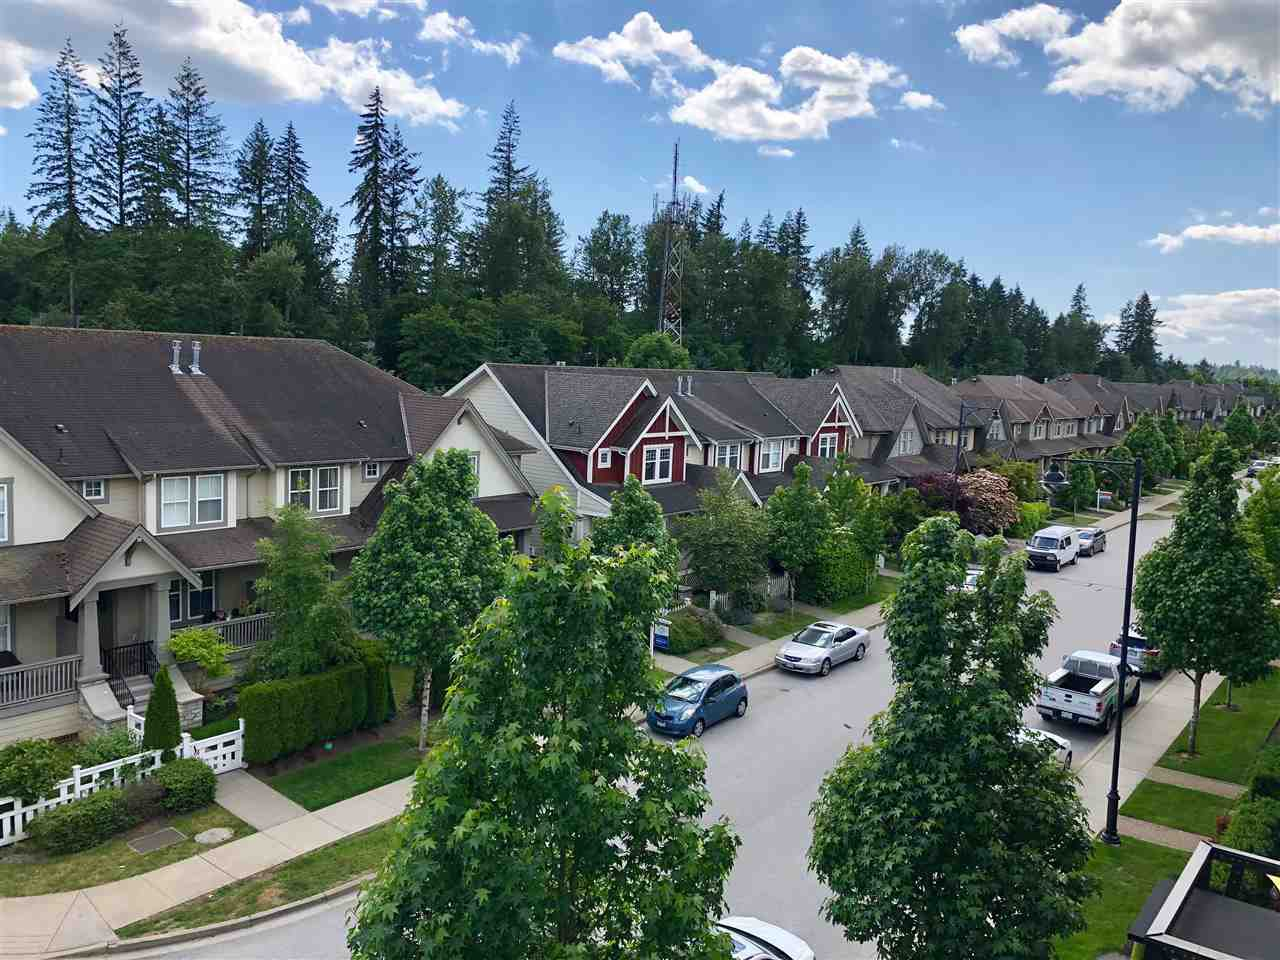 """Photo 4: Photos: 408 23215 BILLY BROWN Road in Langley: Fort Langley Condo for sale in """"WATERFRONT AT BEDFORD LANDING"""" : MLS®# R2390619"""